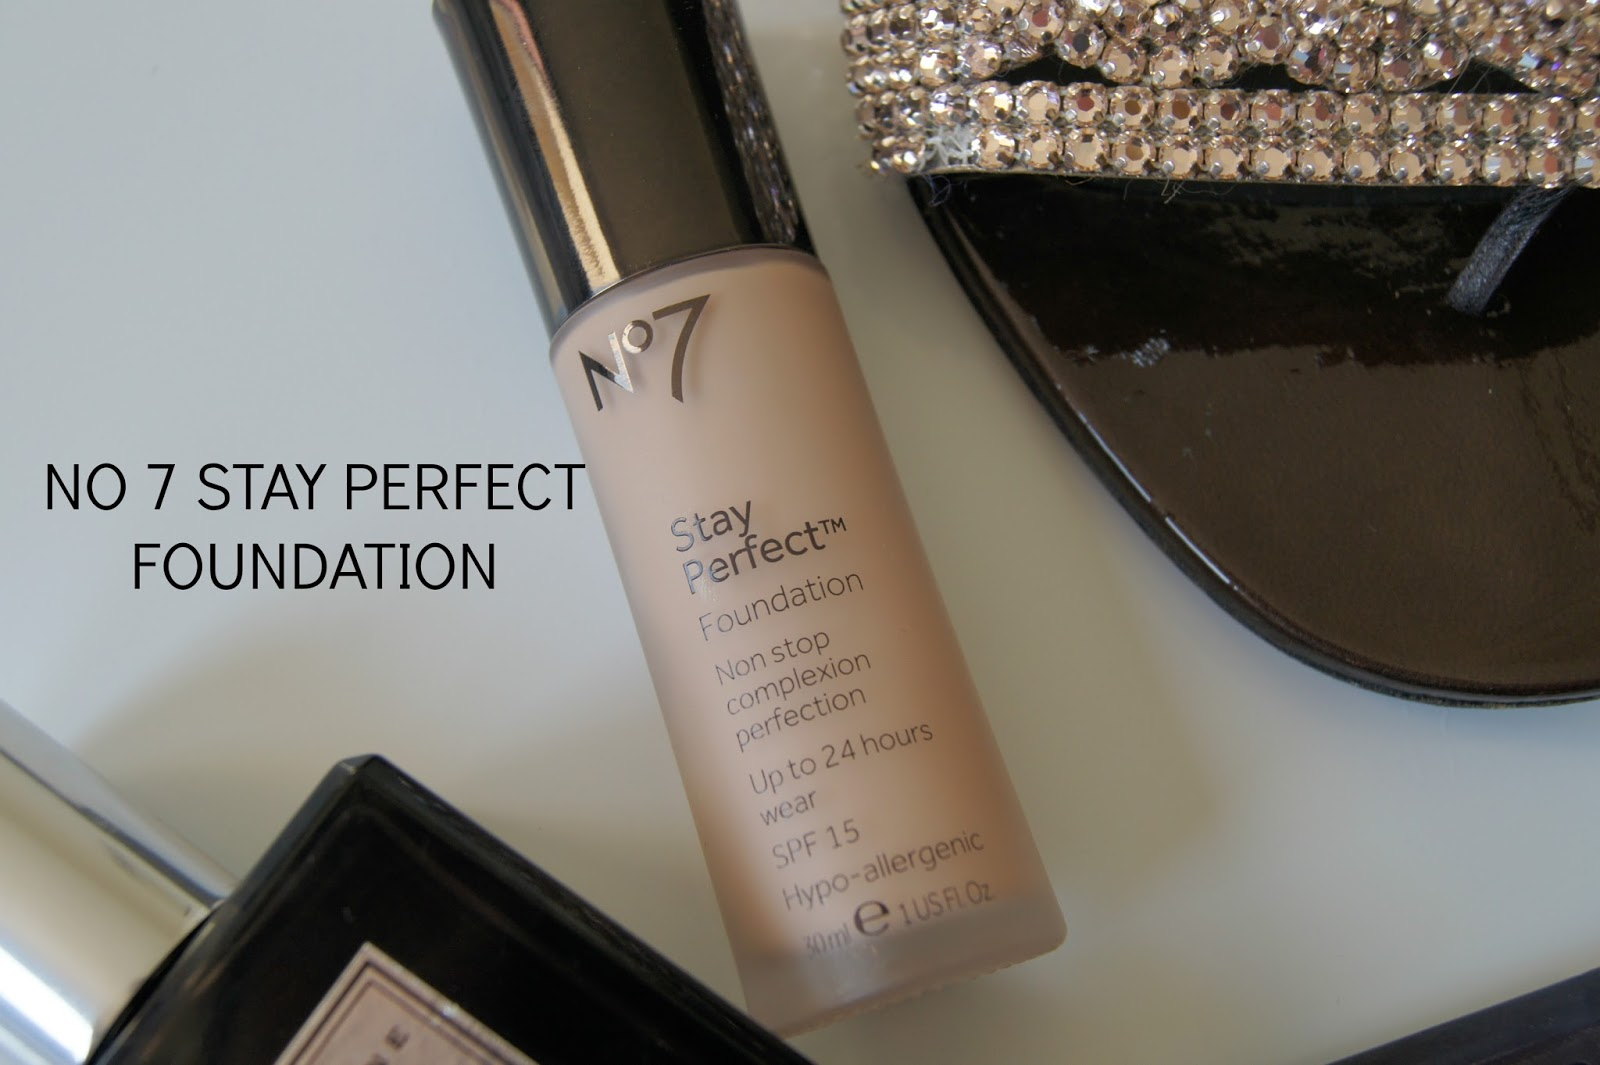 No 7 Stay Perfect foundation